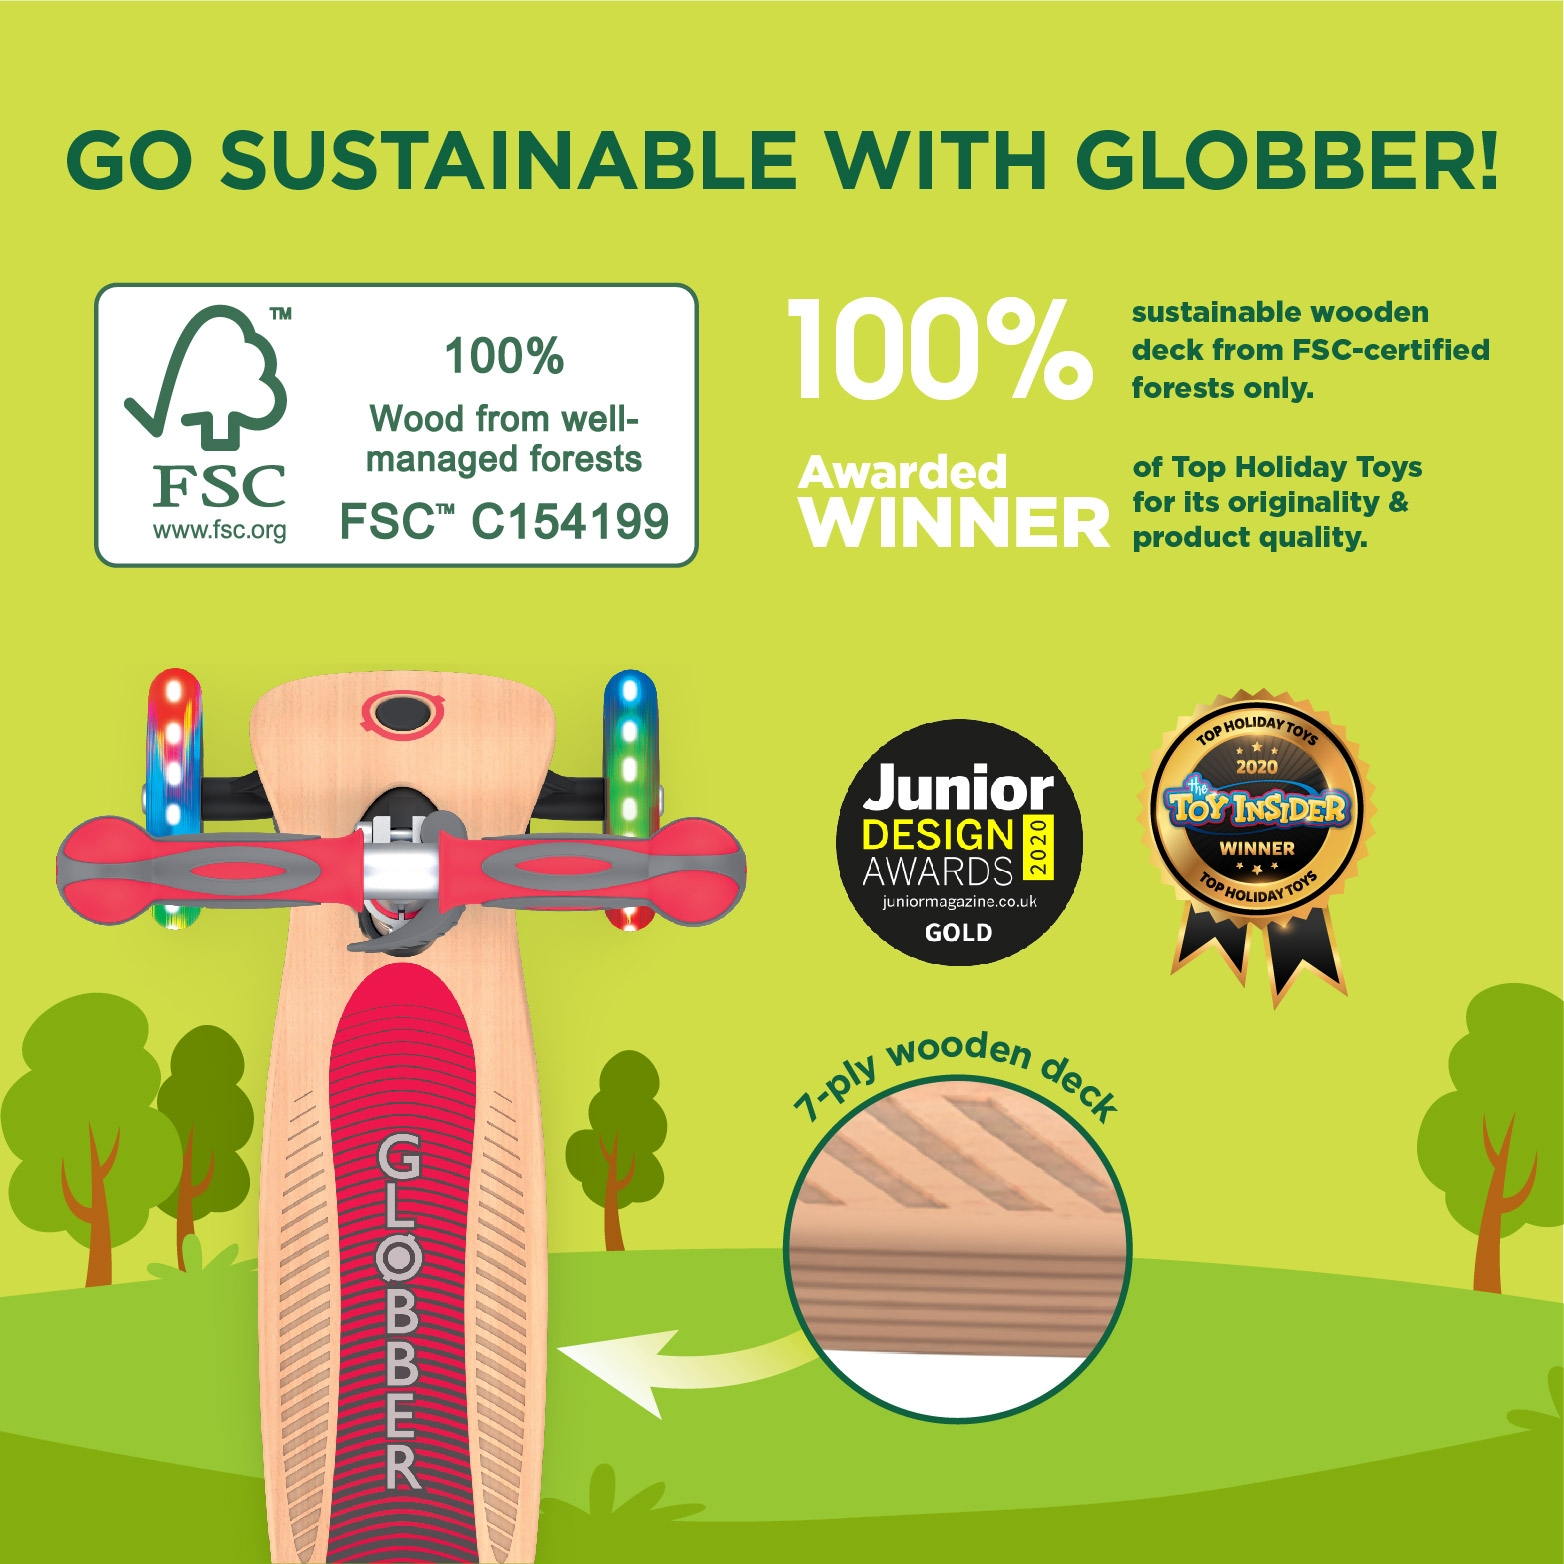 Globber-PRIMO-FOLDABLE-WOOD-LIGHTS-3-wheel-foldable-scooter-for-kids-FSC-certified-7-ply-wooden-scooter-deck